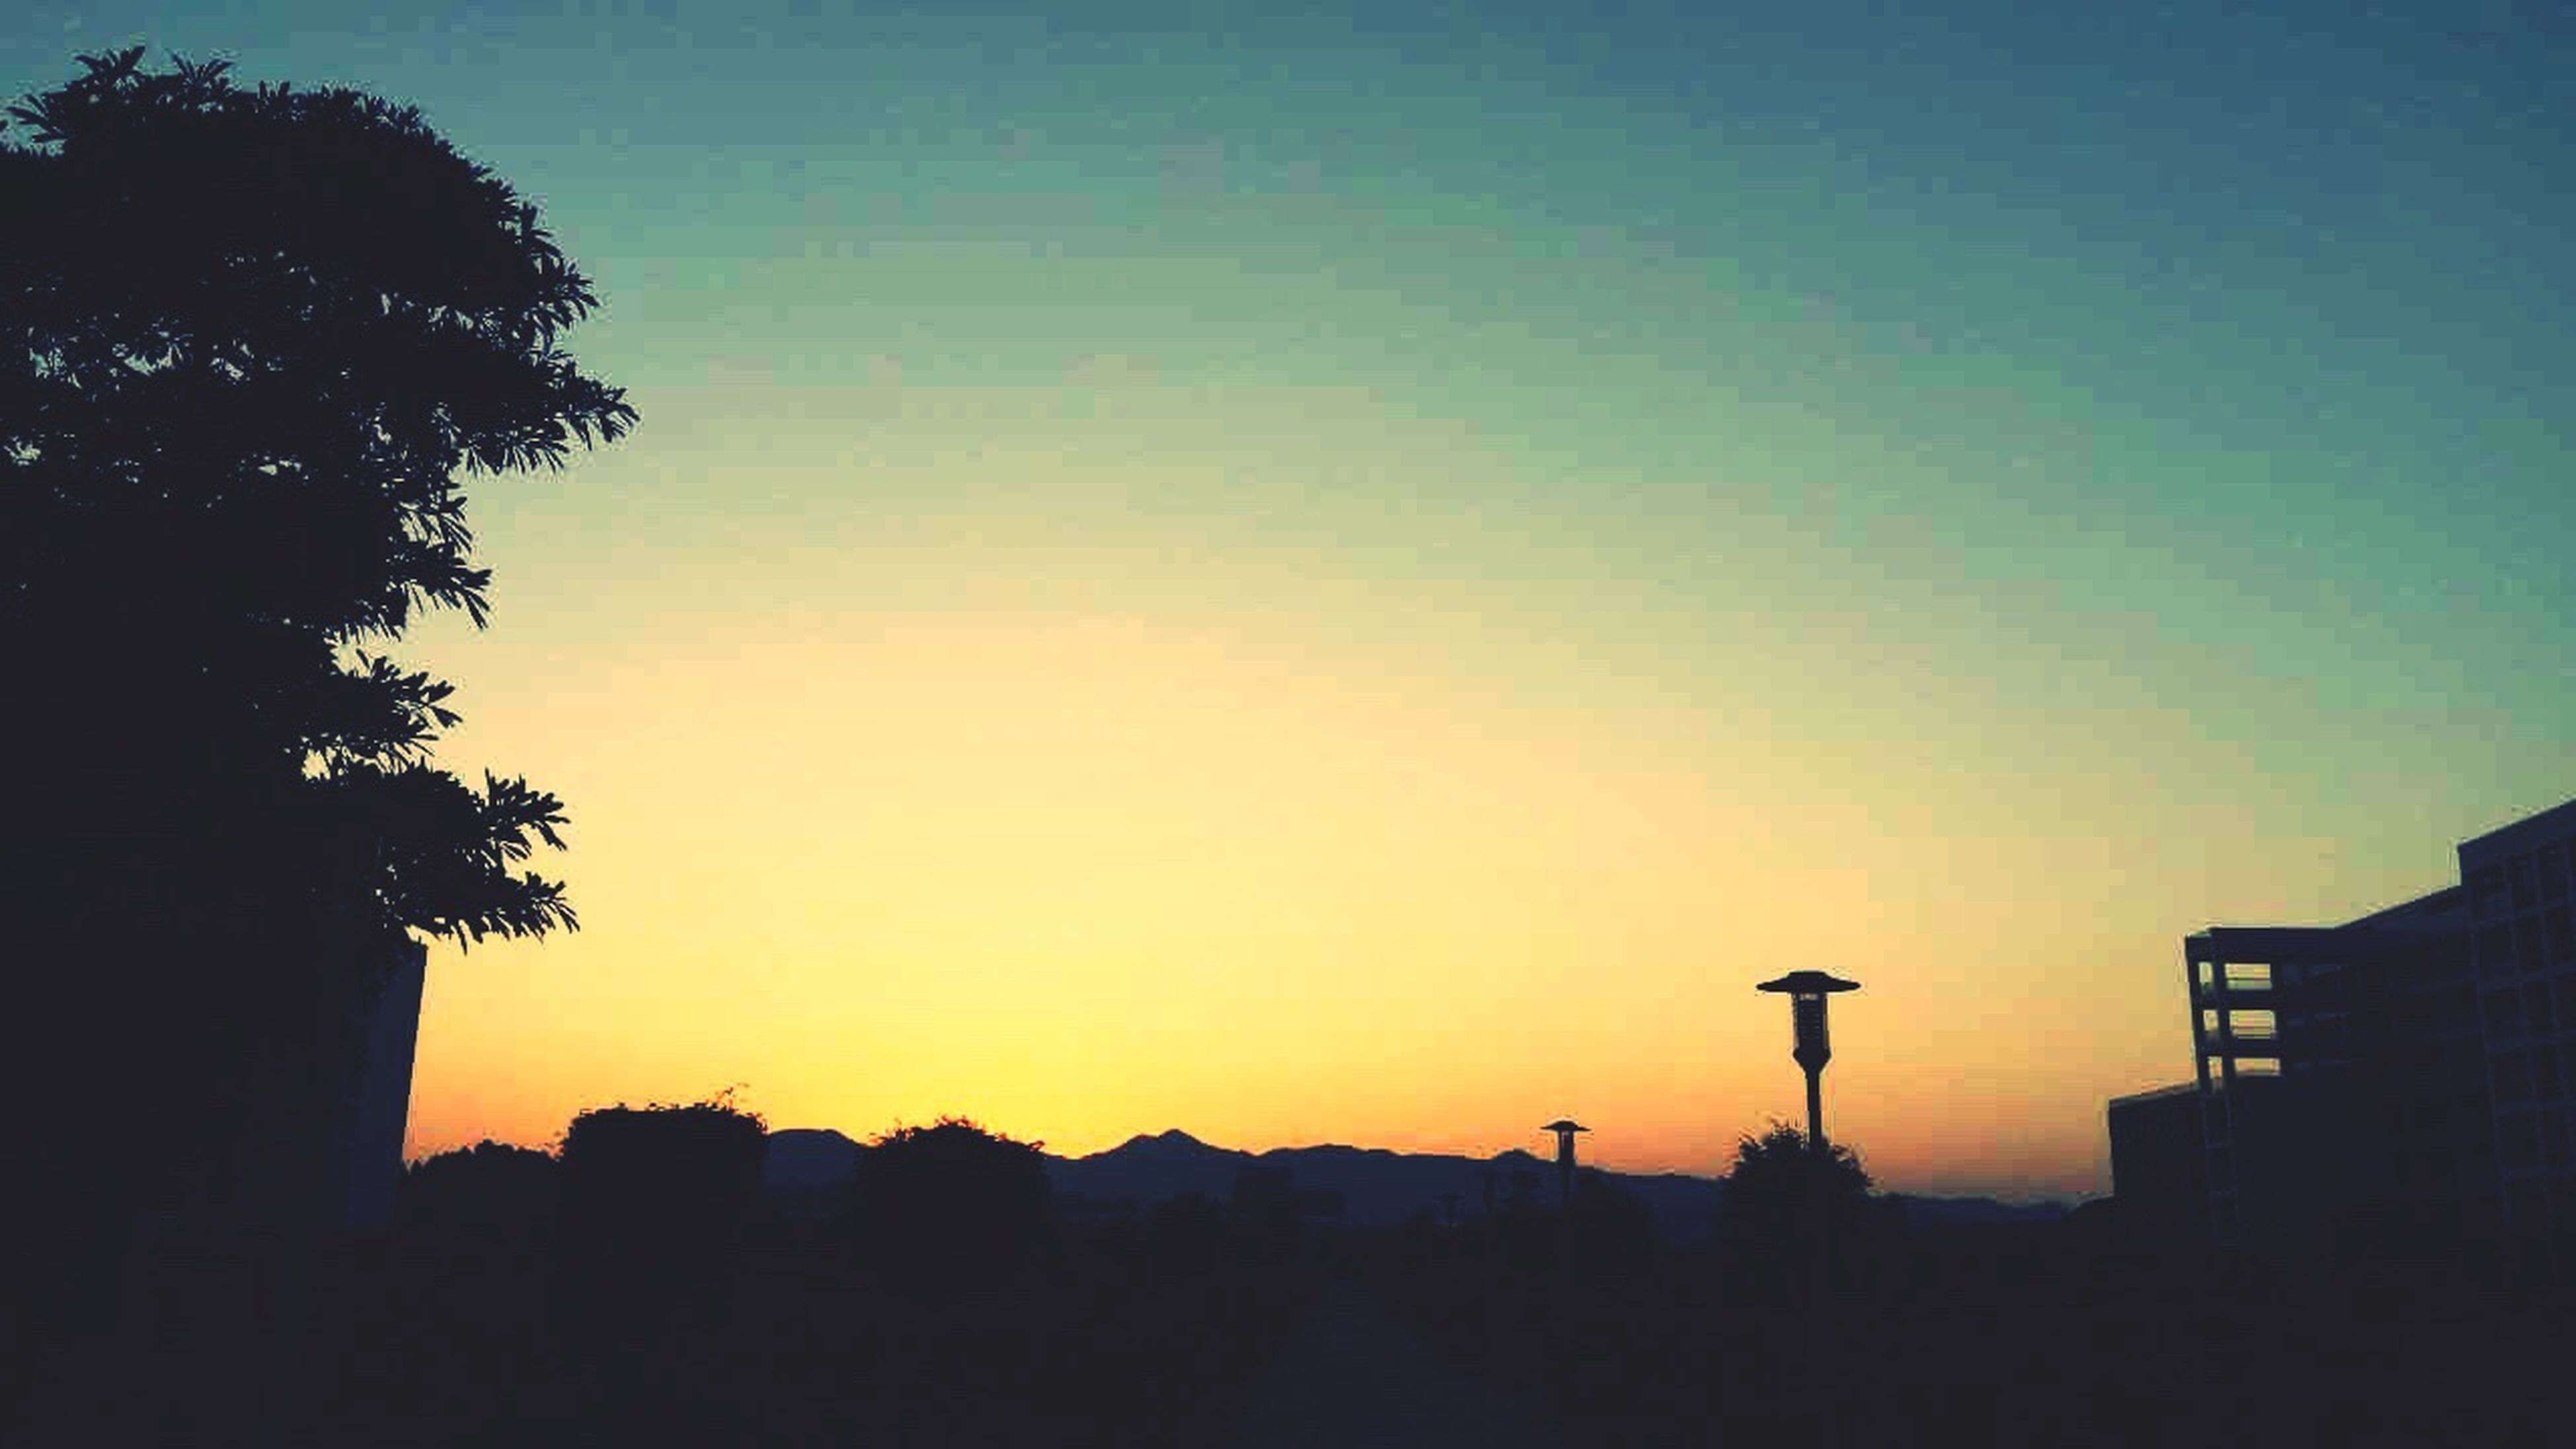 silhouette, sunset, copy space, clear sky, orange color, tree, building exterior, built structure, beauty in nature, architecture, outline, scenics, nature, tranquil scene, tranquility, sky, dusk, low angle view, dark, outdoors